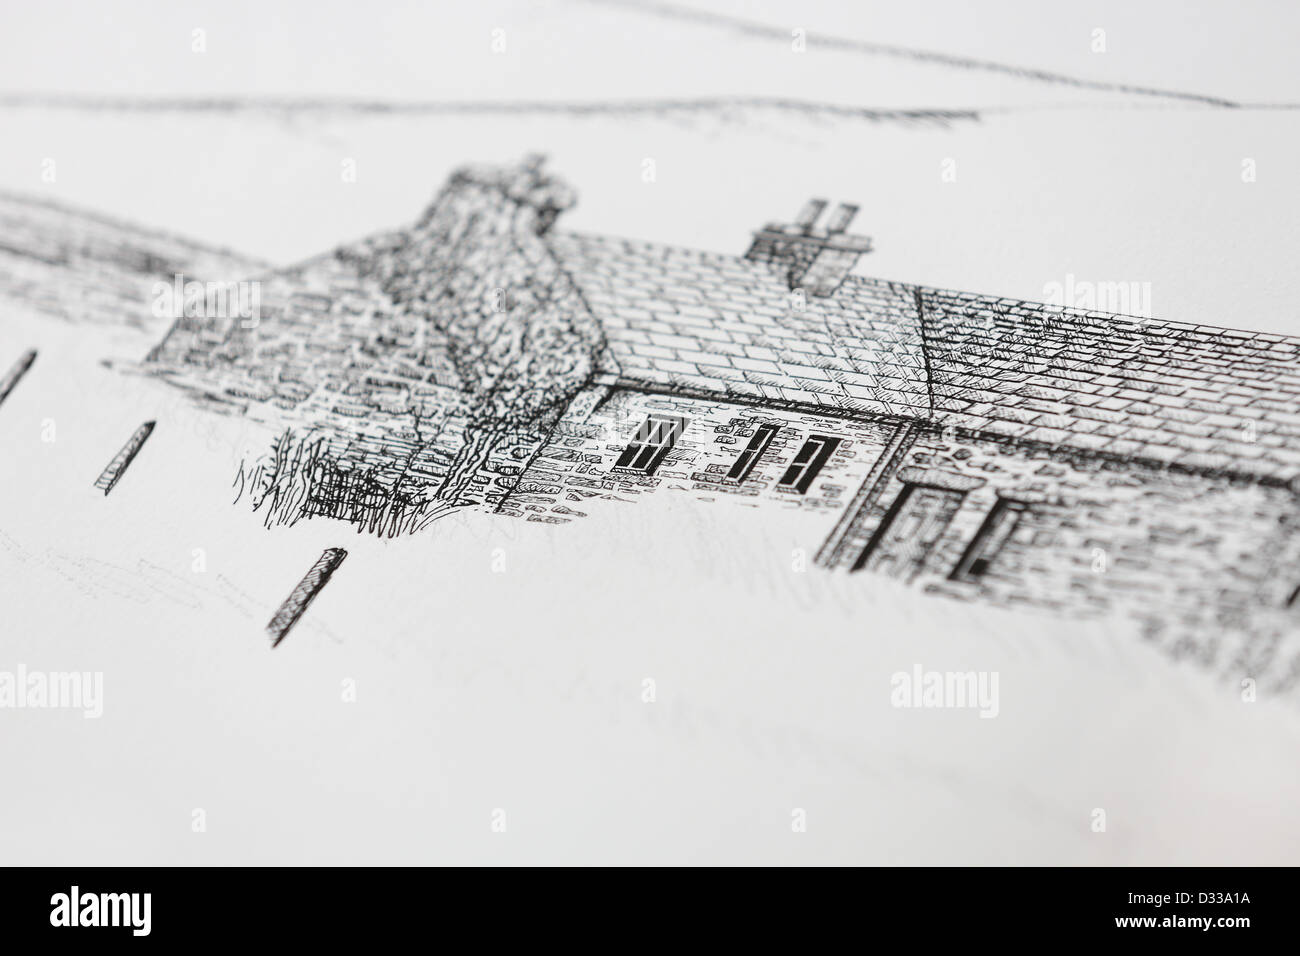 Artist drawing / sketching in studio pen and ink line drawing of old Scottish cottage architecture in Orkney islands. - Stock Image